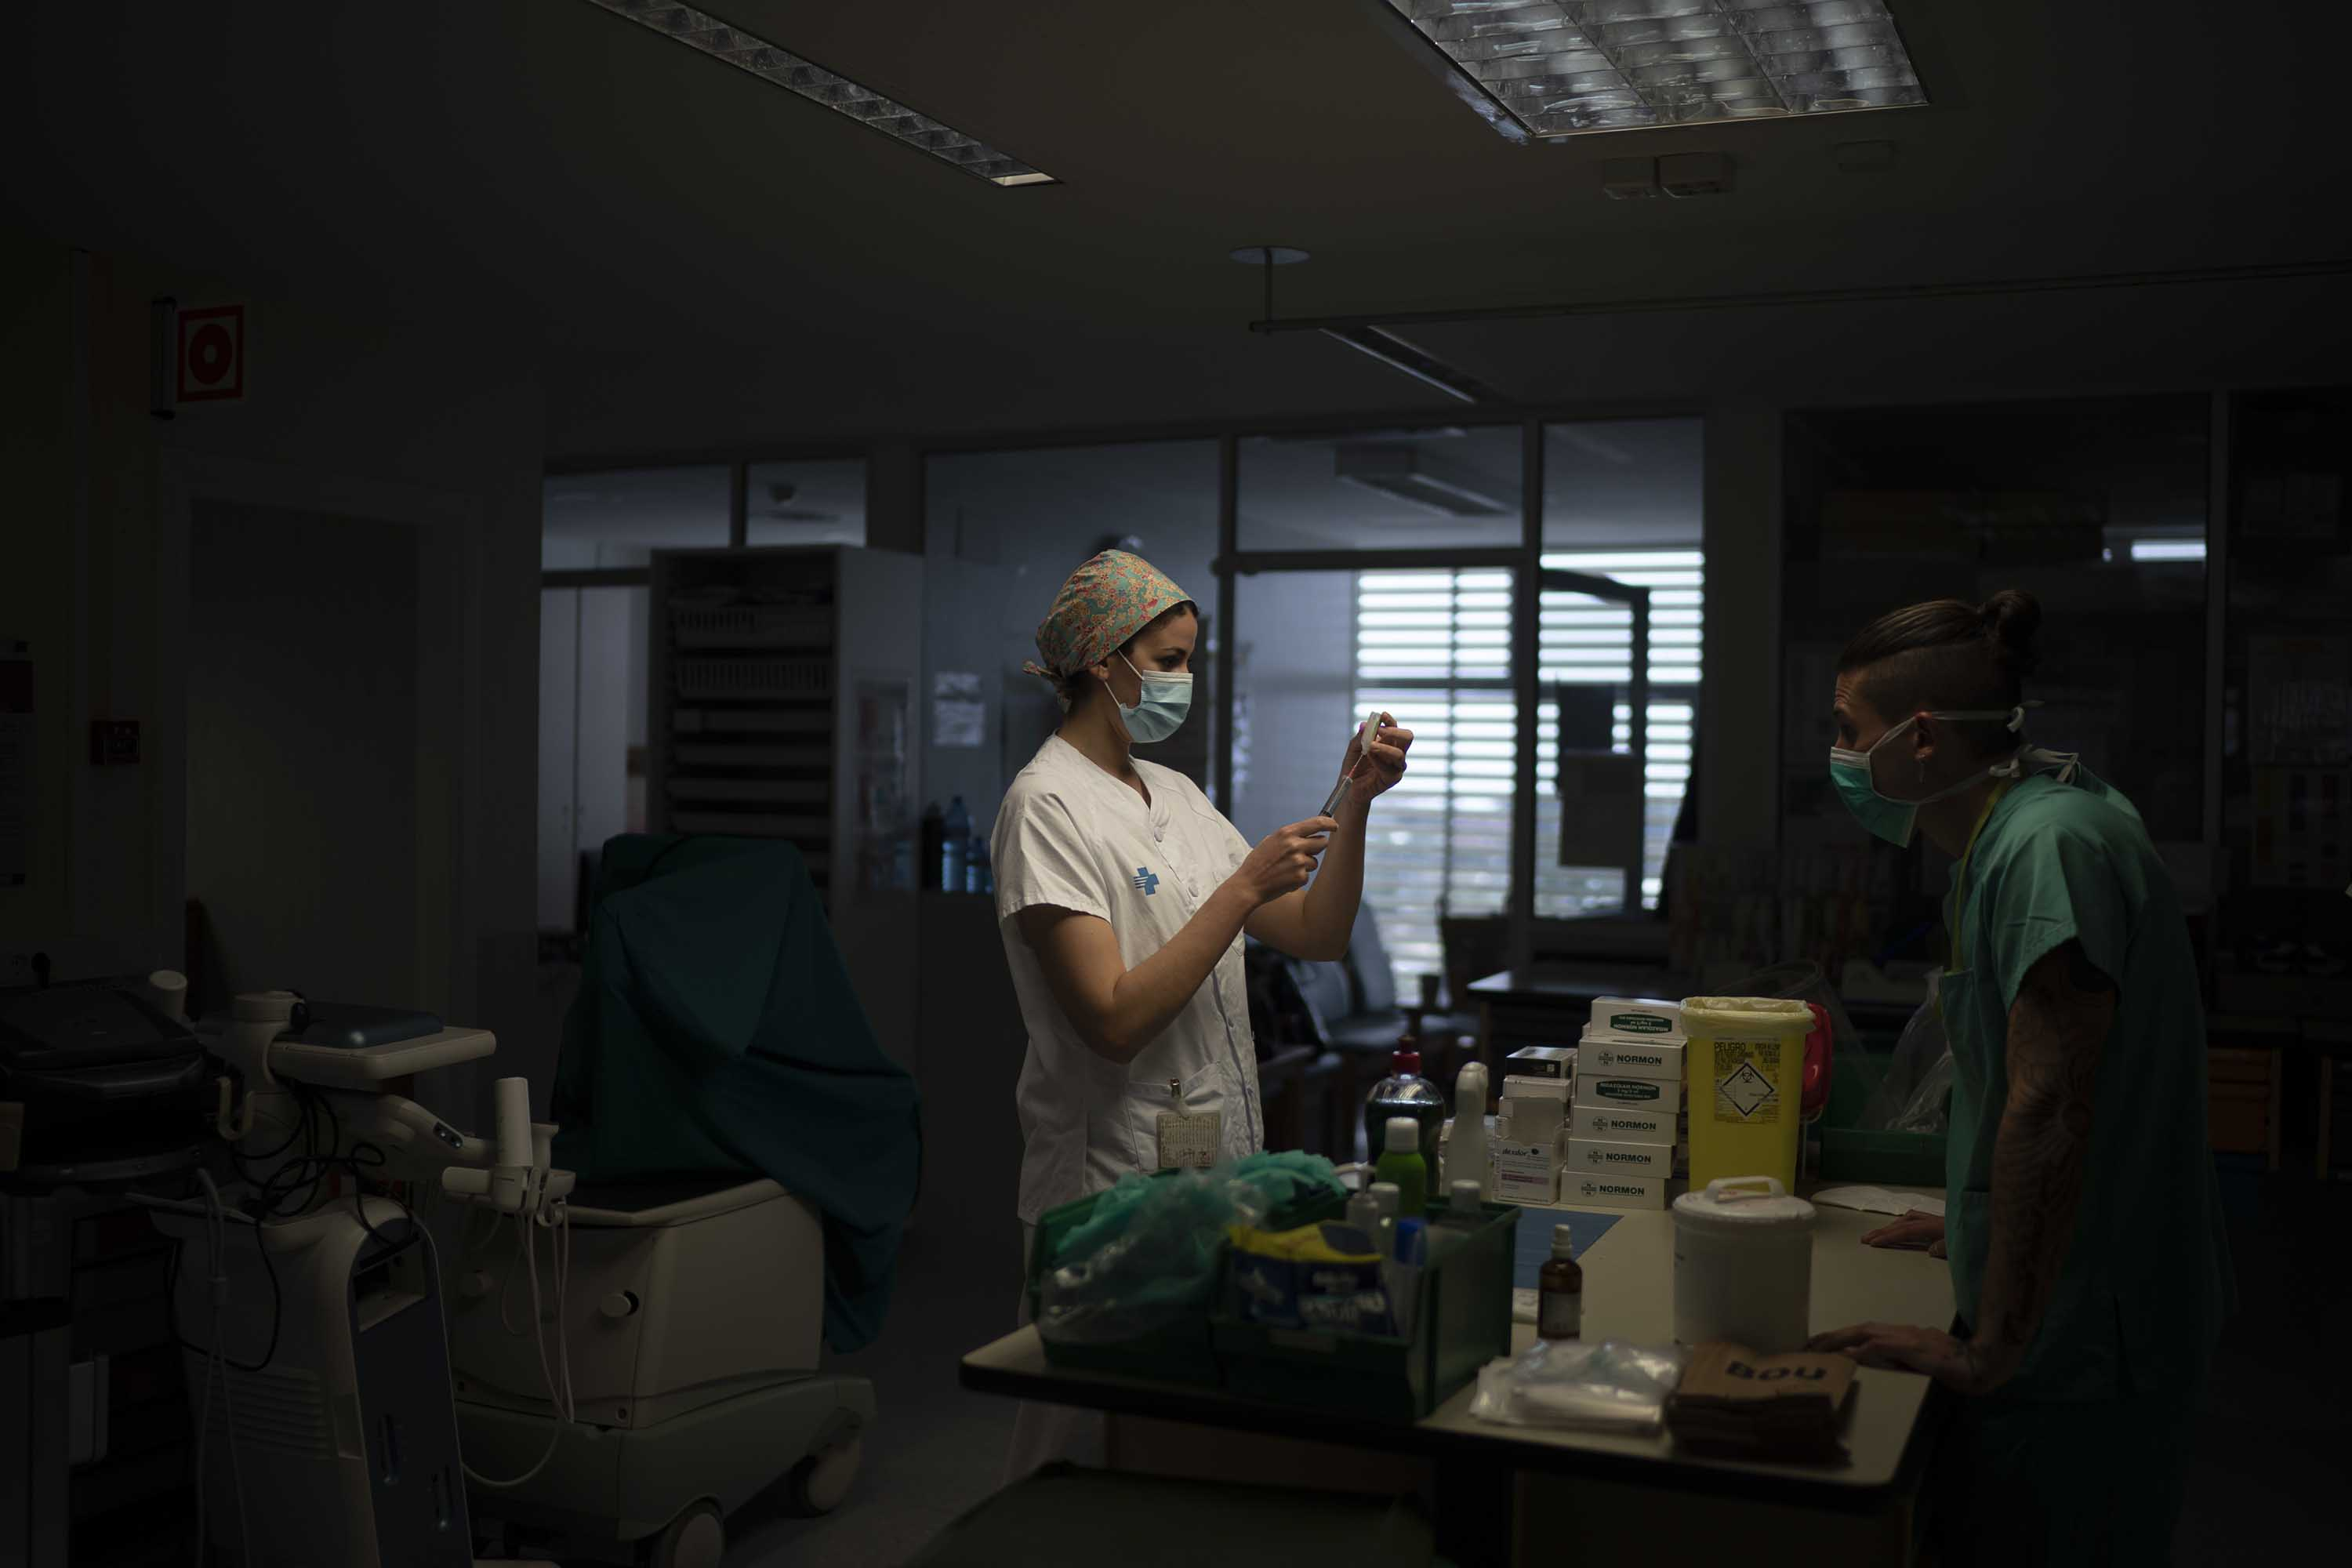 A healthcare worker prepares medication for a coronavirus patient at a hospital in Badalona, Spain, on April 1.